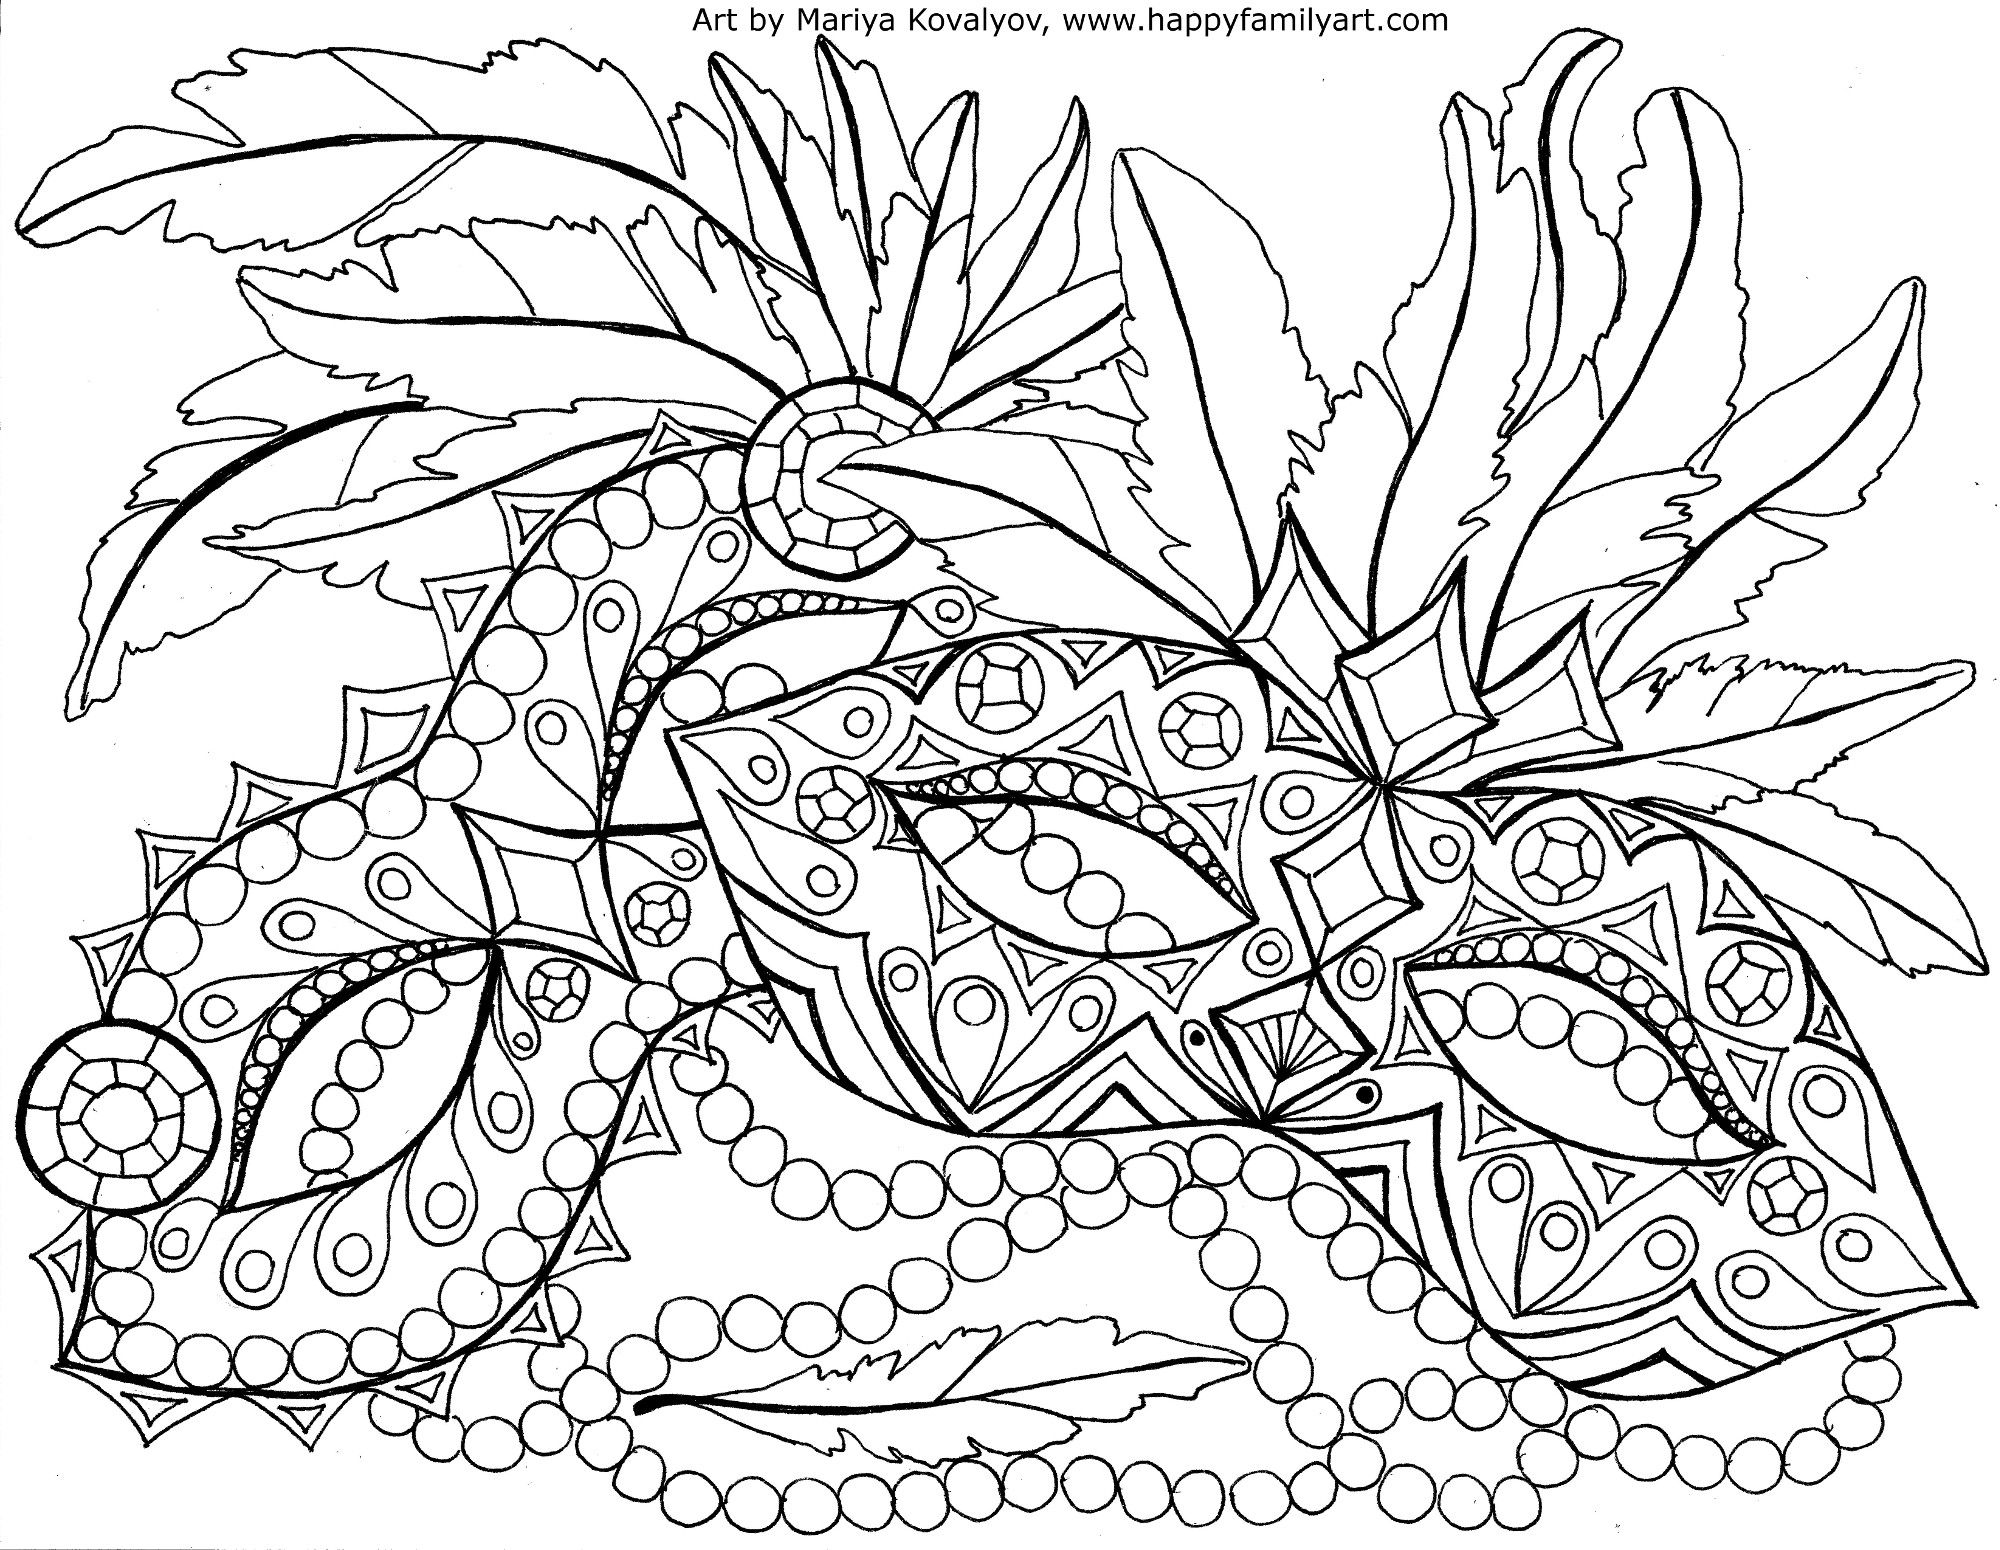 Colouring in for adults why - Mardi Gras Masquerade Colouring Page For Adults